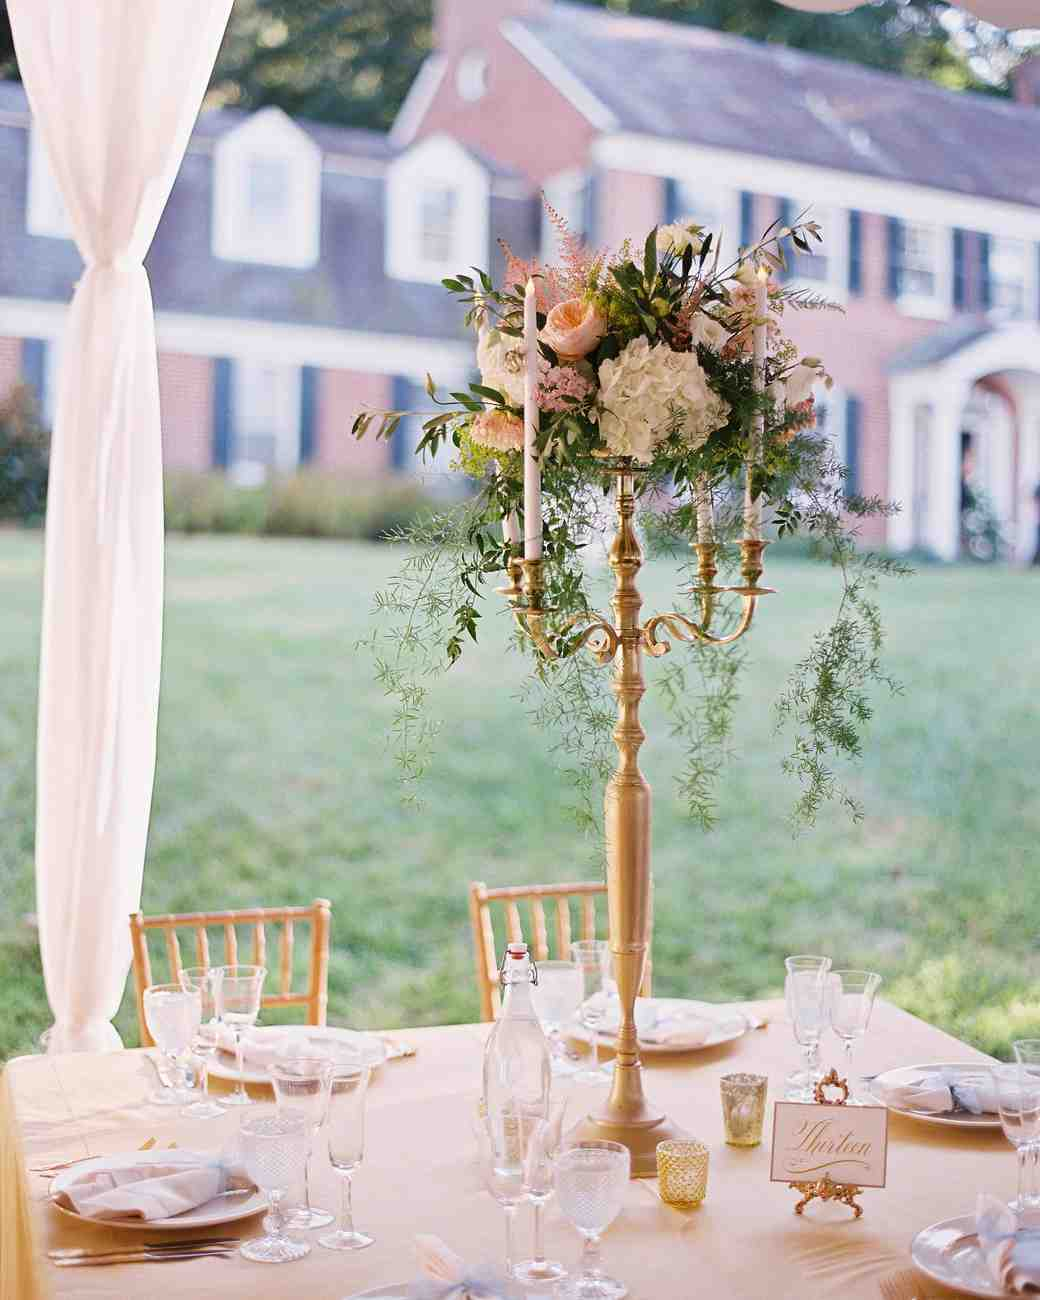 Wedding Flower Arrangements: Tall Centerpieces That Will Take Your Reception Tables To